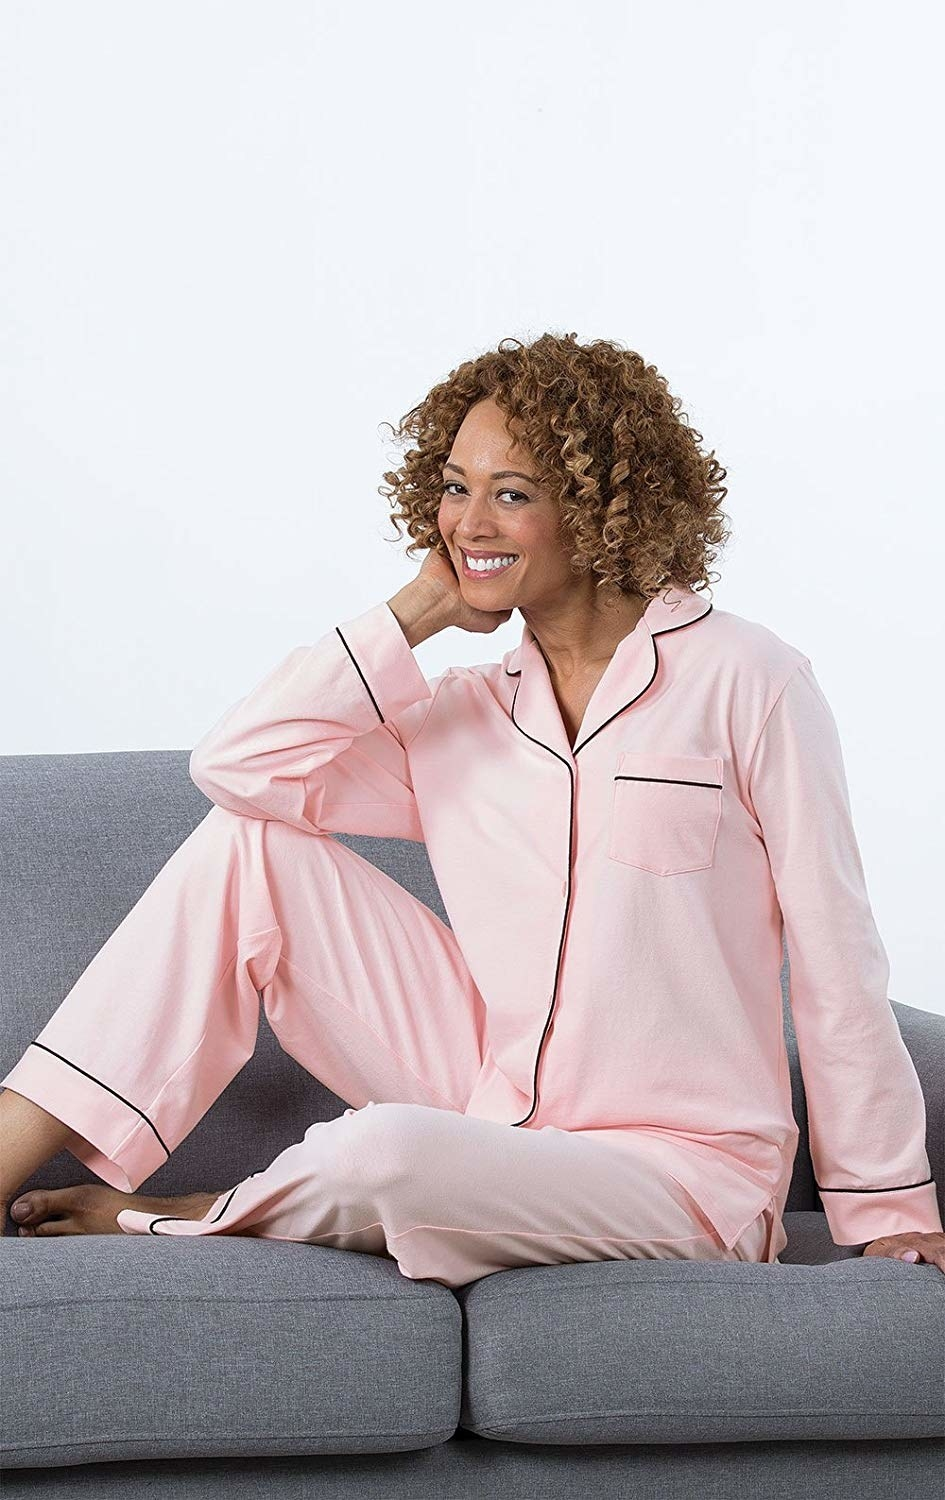 A different model wearing the pajamas in light pink